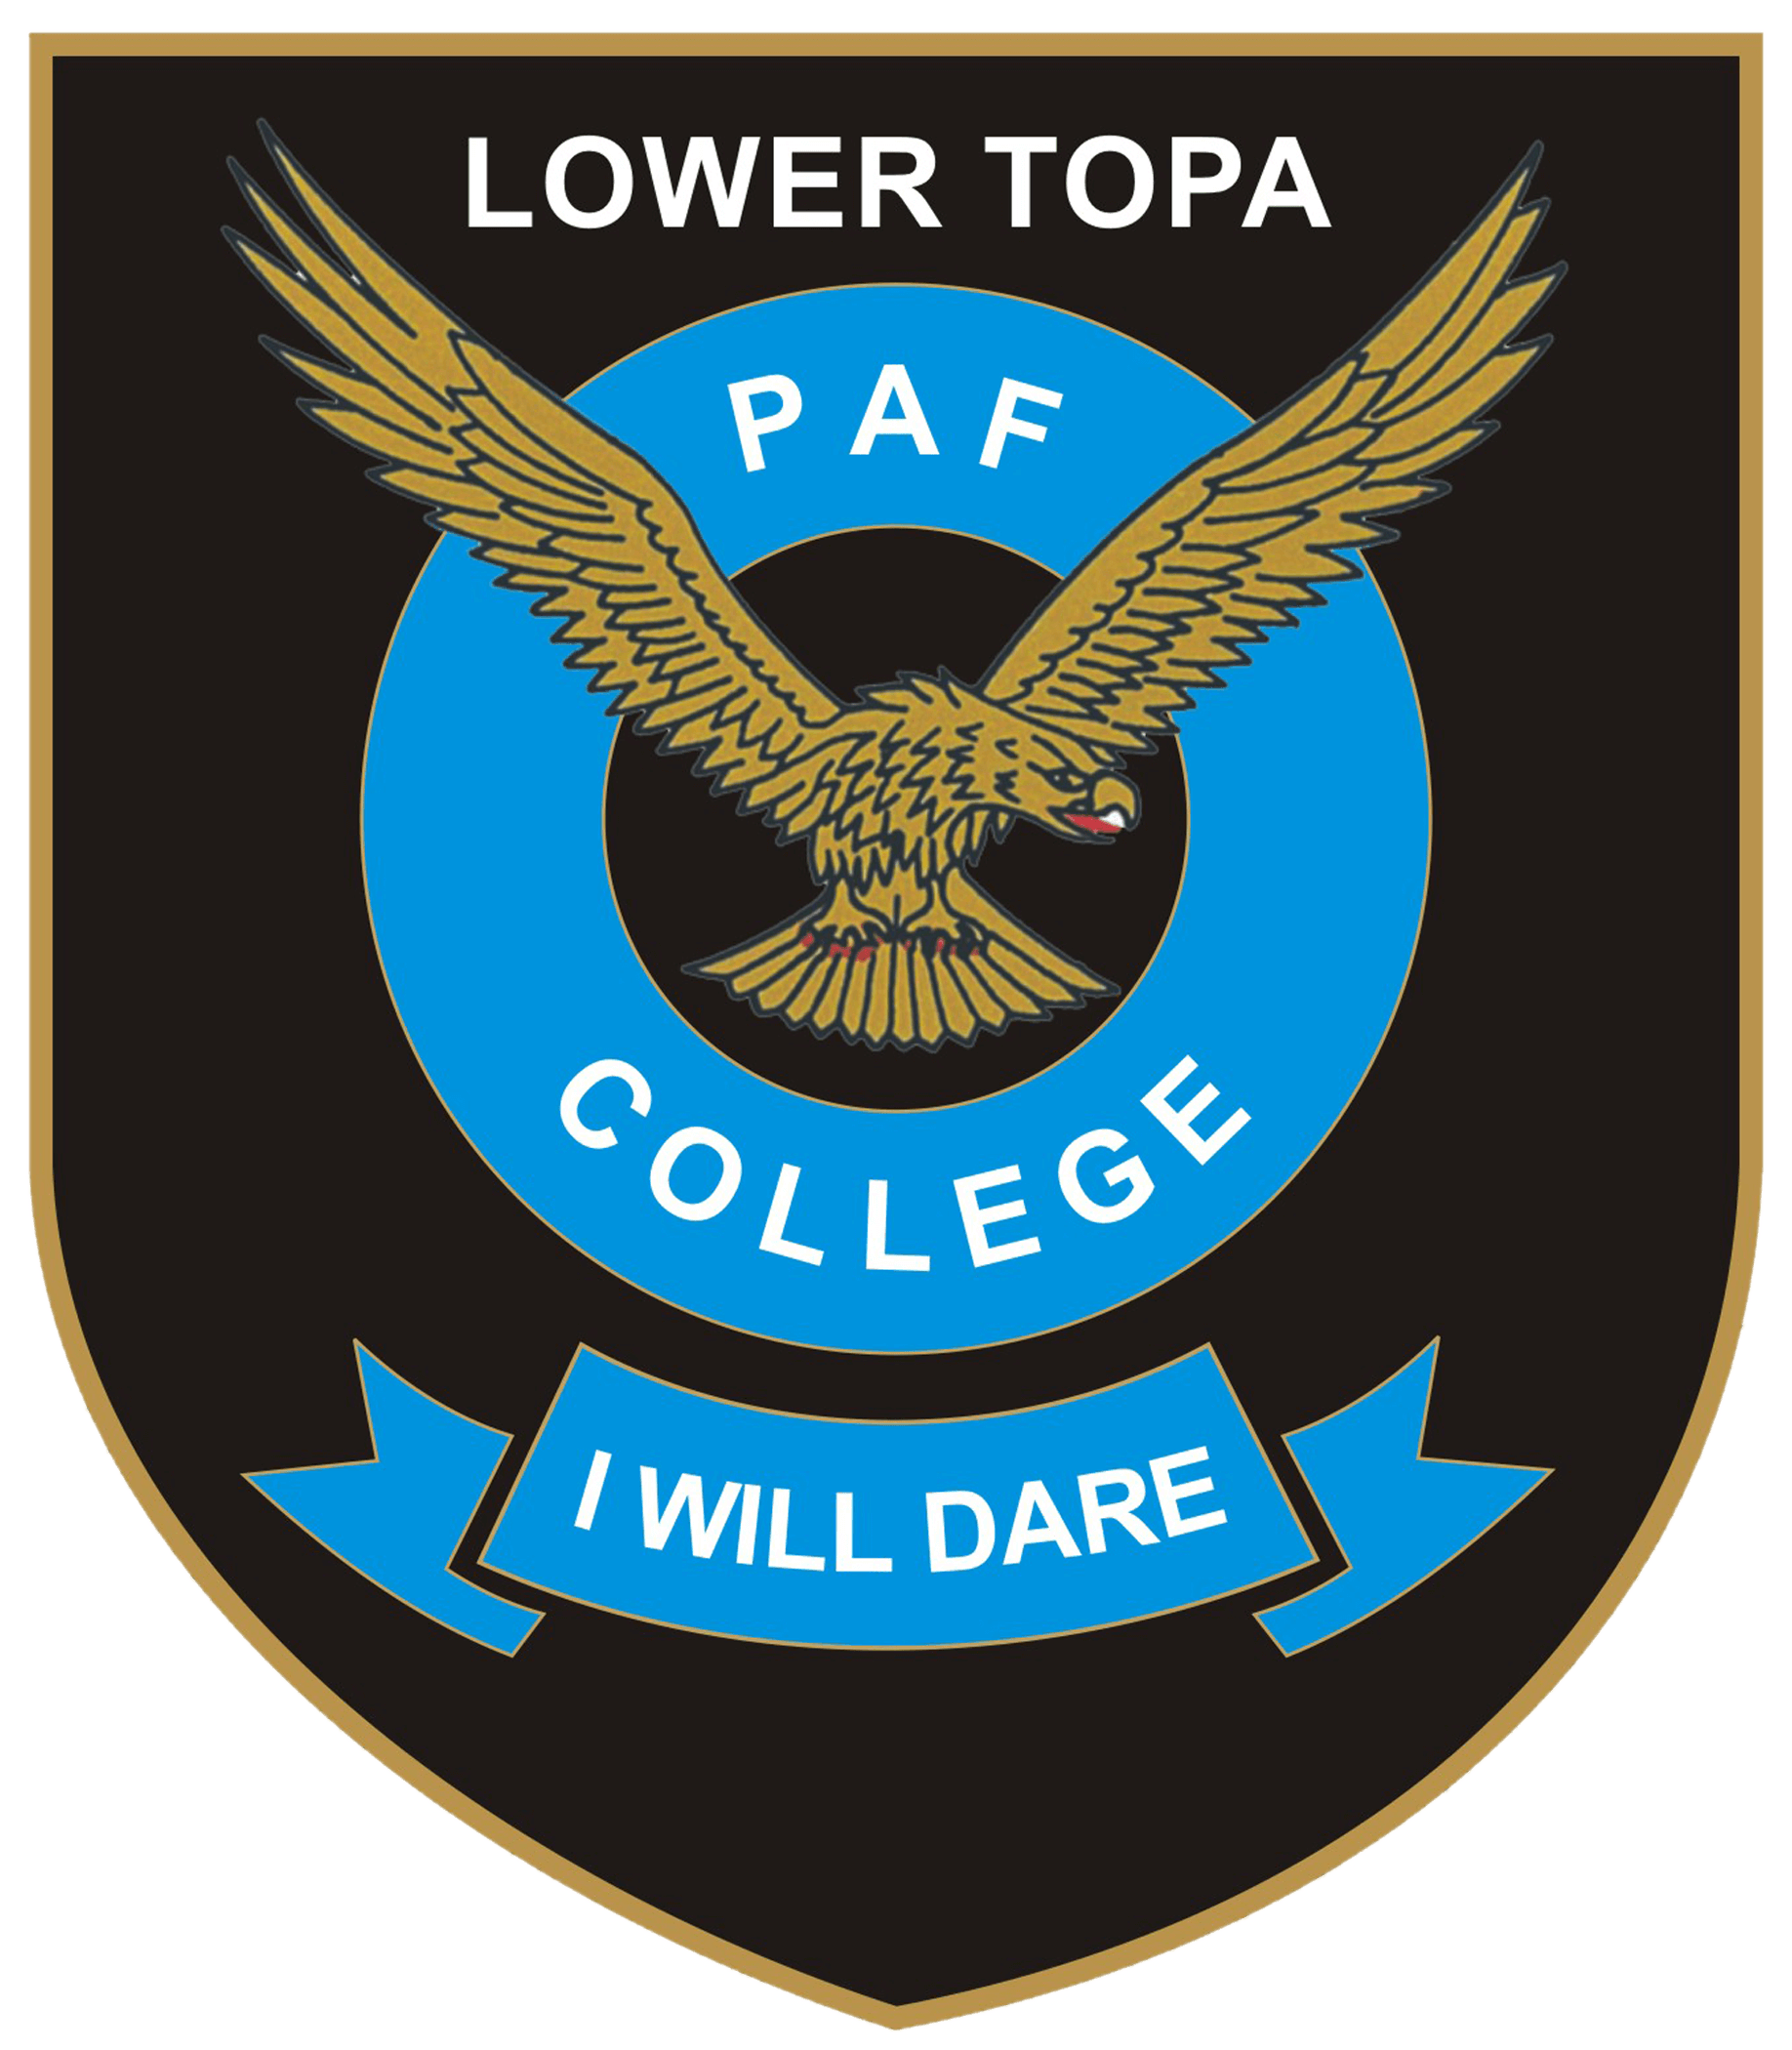 PAF COLLEGE LOWER TOPA MURREE